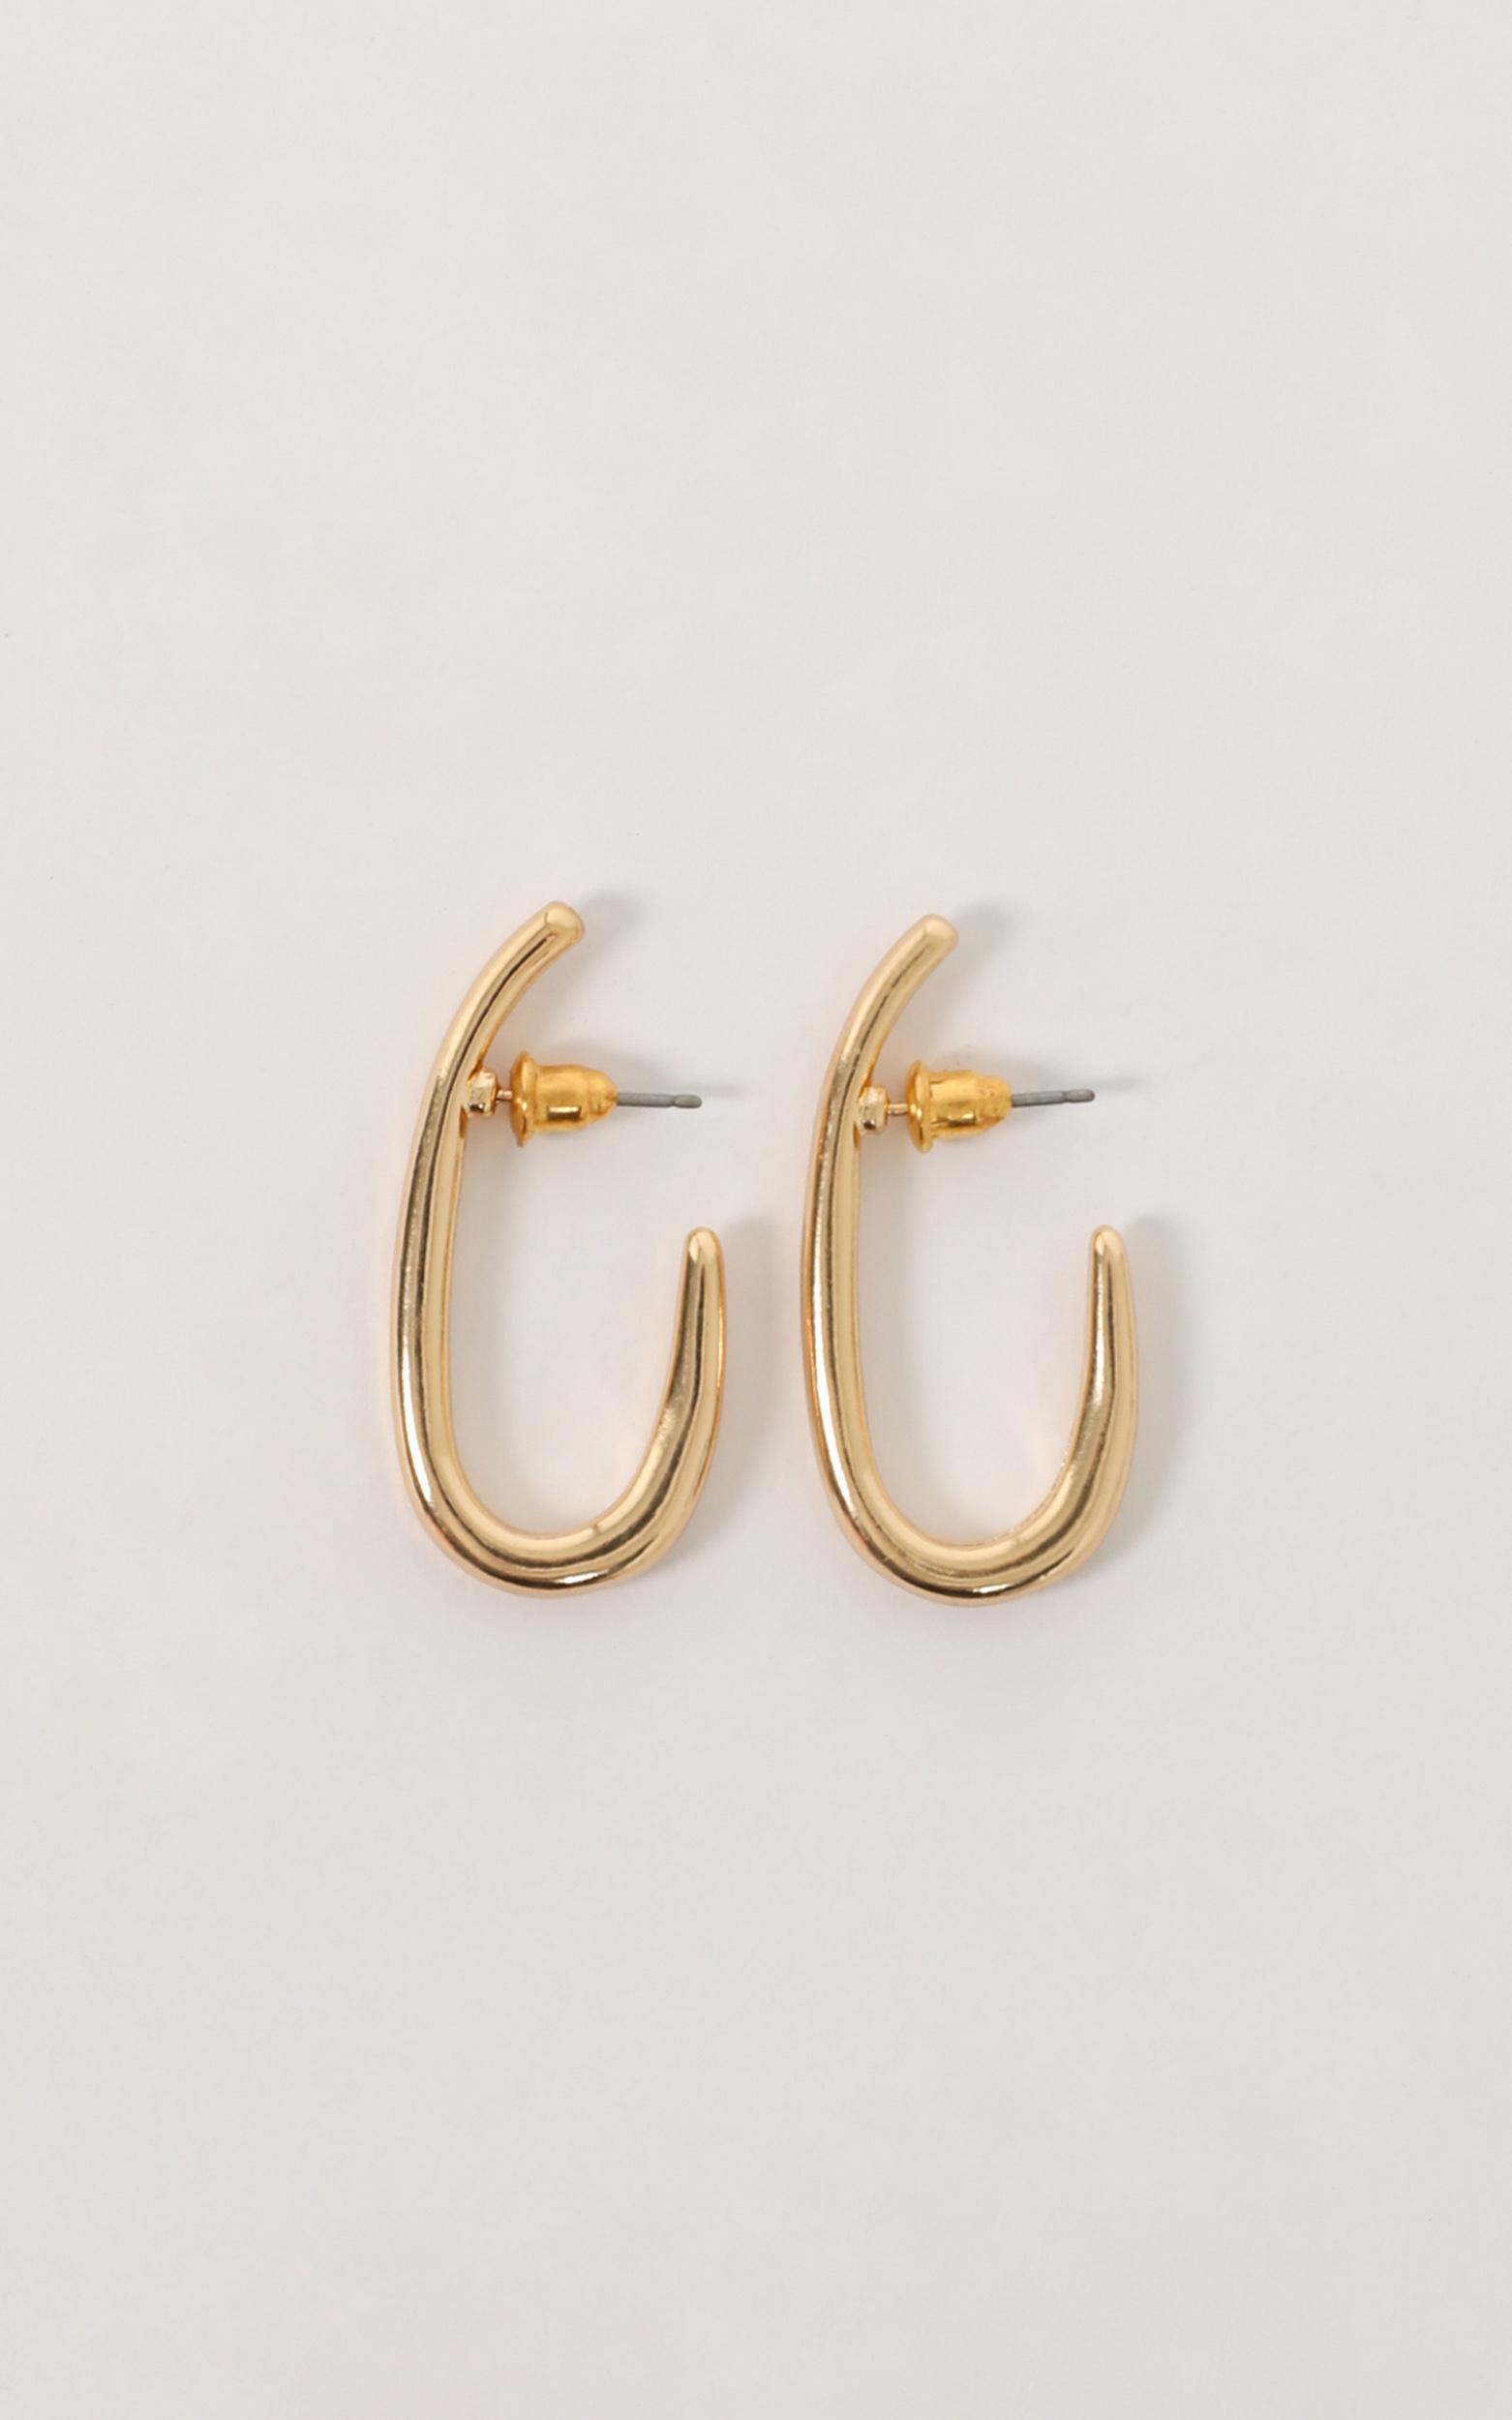 Truth Hurts Earrings In Gold, , hi-res image number null